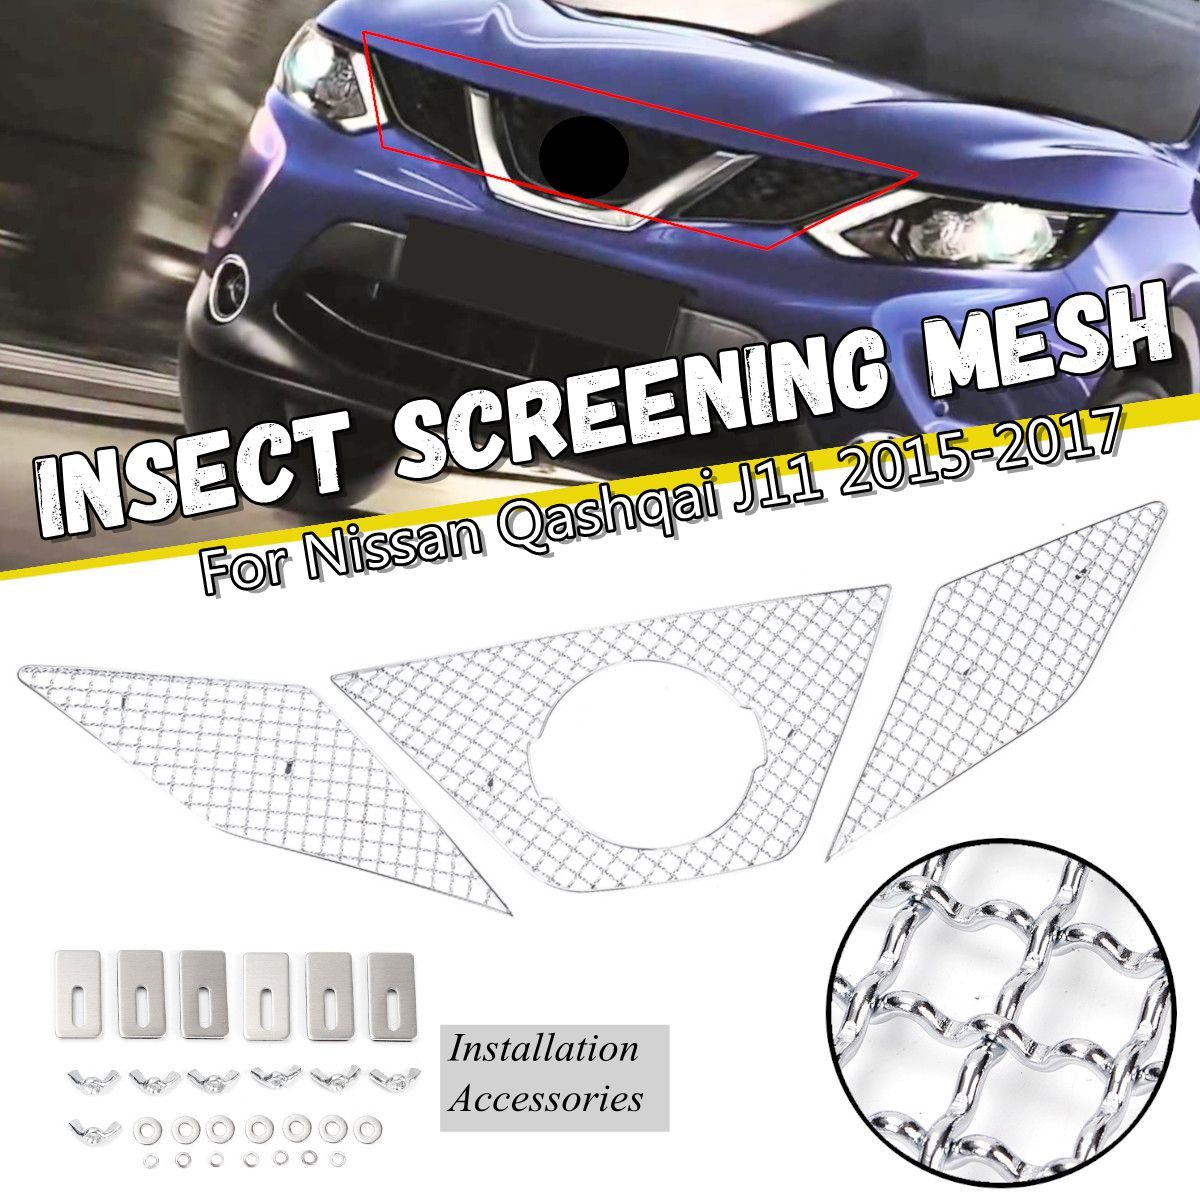 3Pcs/Set Car Stainless Steel Front Bumper Grill Vent Grille Insect Screening Mesh Net For Nissan Qashqai J11 2015-20173Pcs/Set Car Stainless Steel Front Bumper Grill Vent Grille Insect Screening Mesh Net For Nissan Qashqai J11 2015-2017